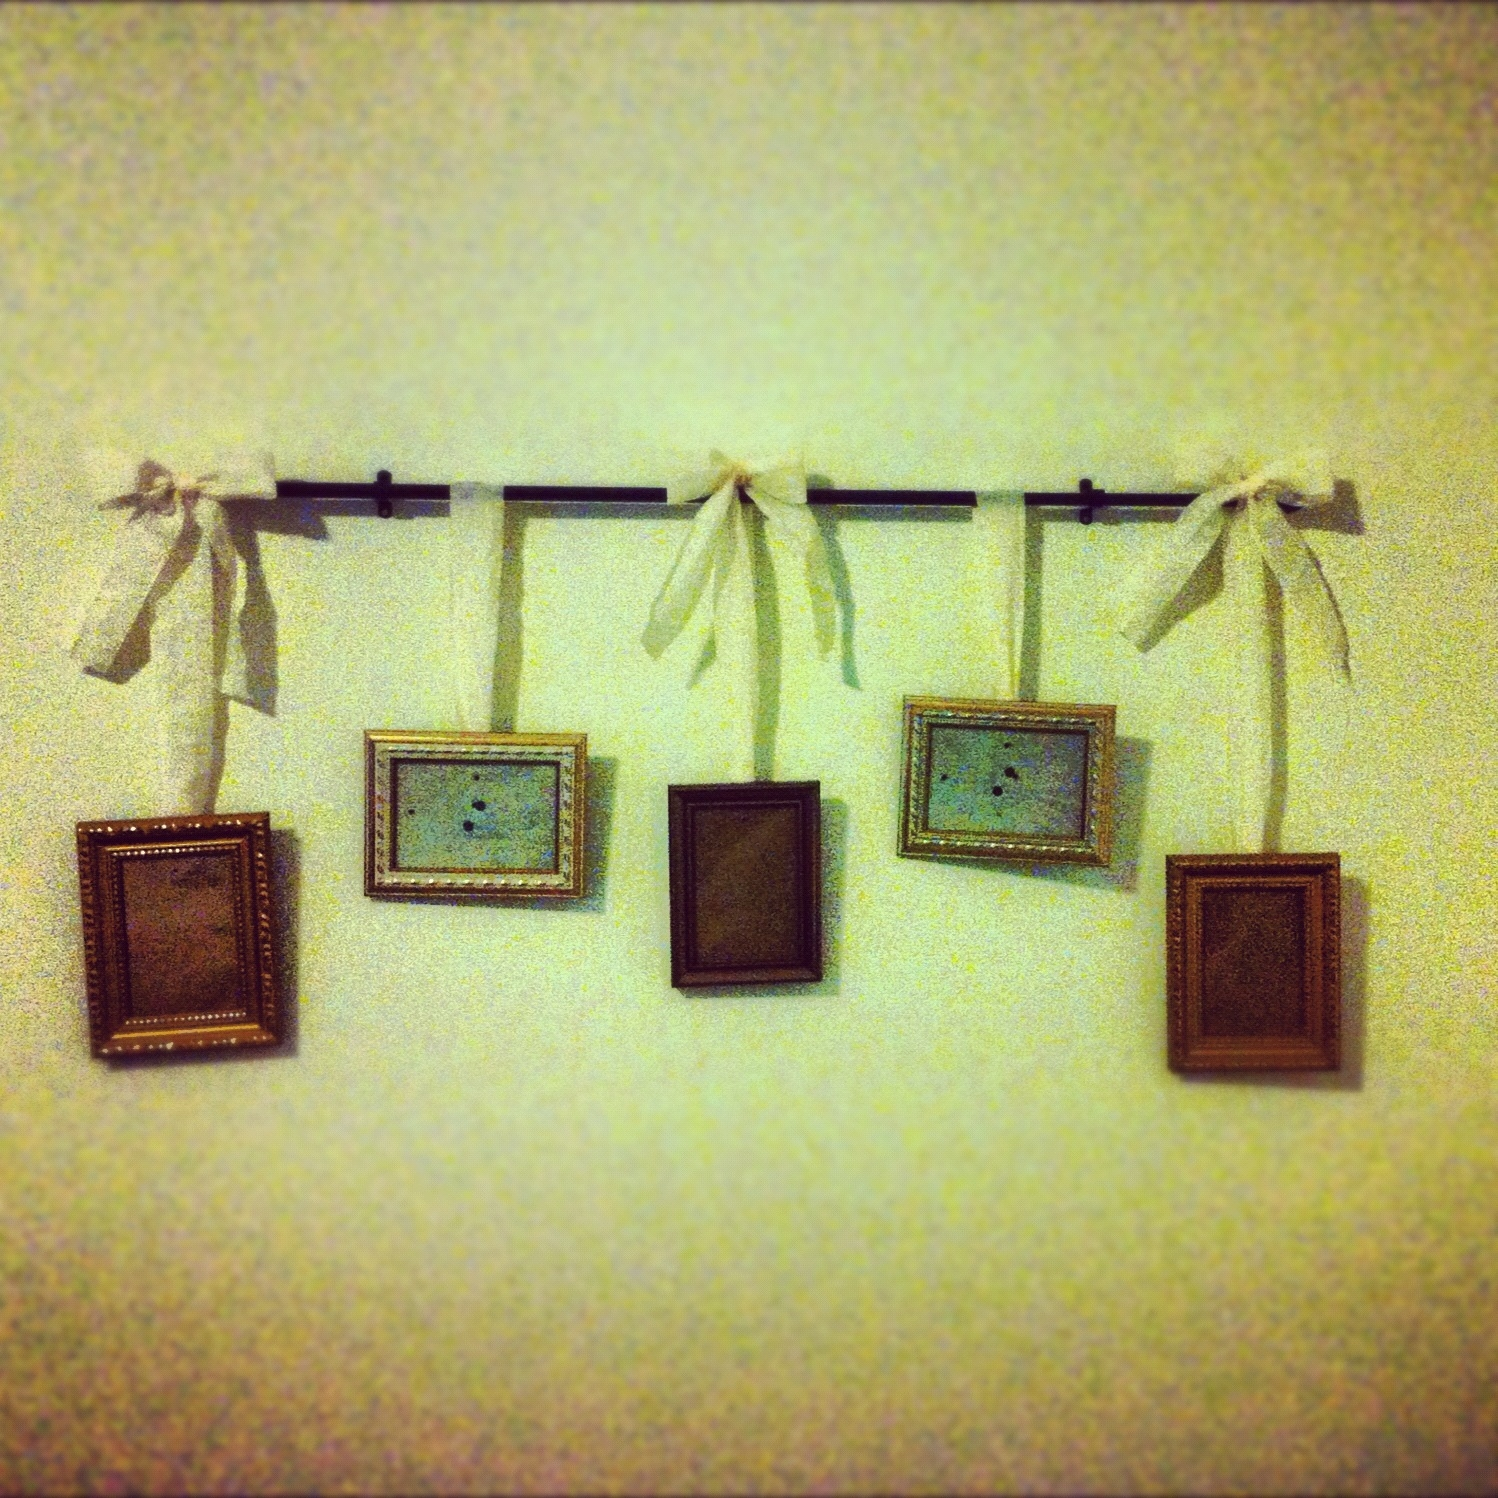 The Nj Report 1st Diy Attempt Hanging Picture Frames